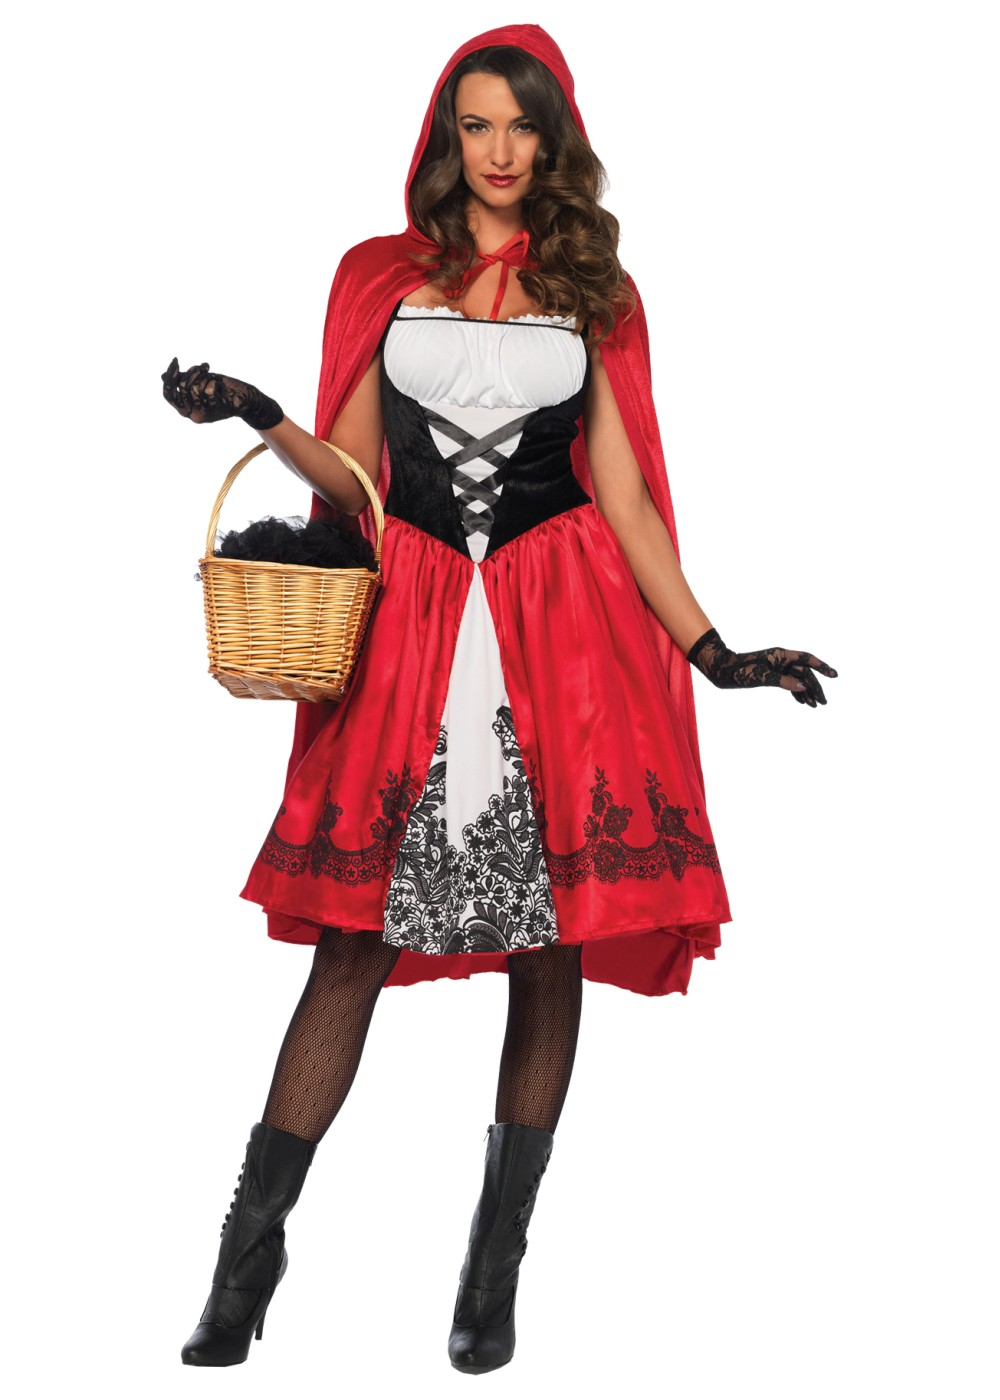 Red Riding Hood Women Costume Costumes